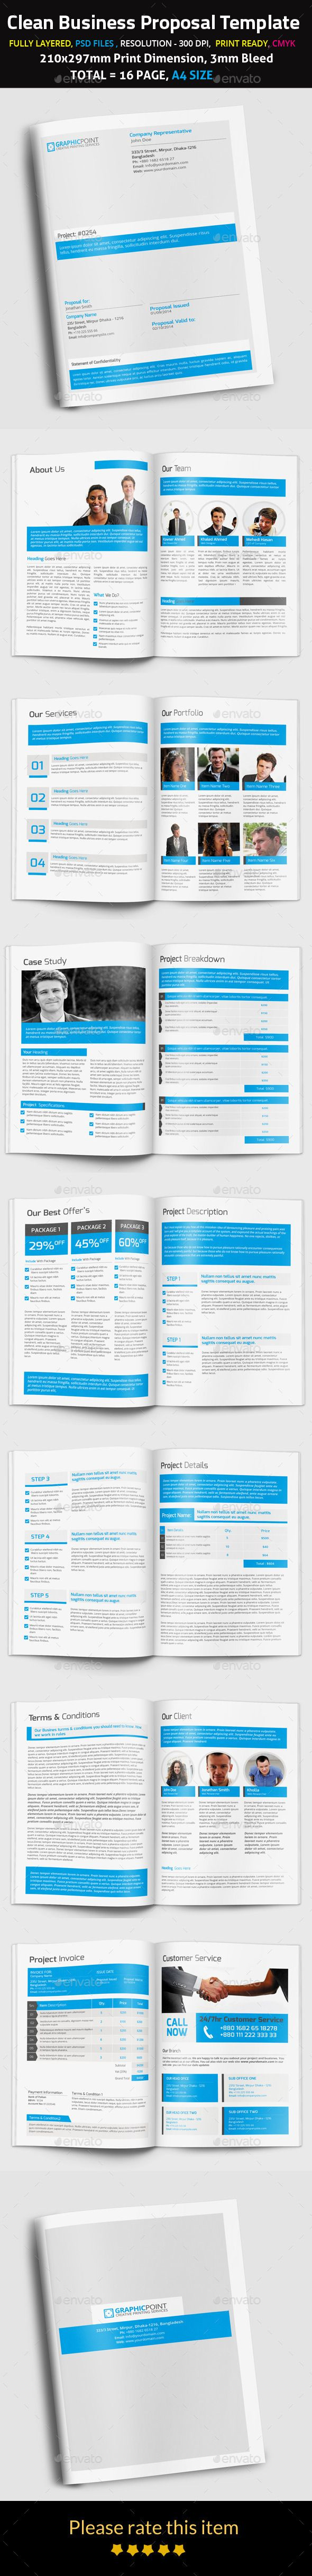 Commercial Proposal Format Unique 504 Best Business Proposal Images On Pinterest  Proposal Templates .